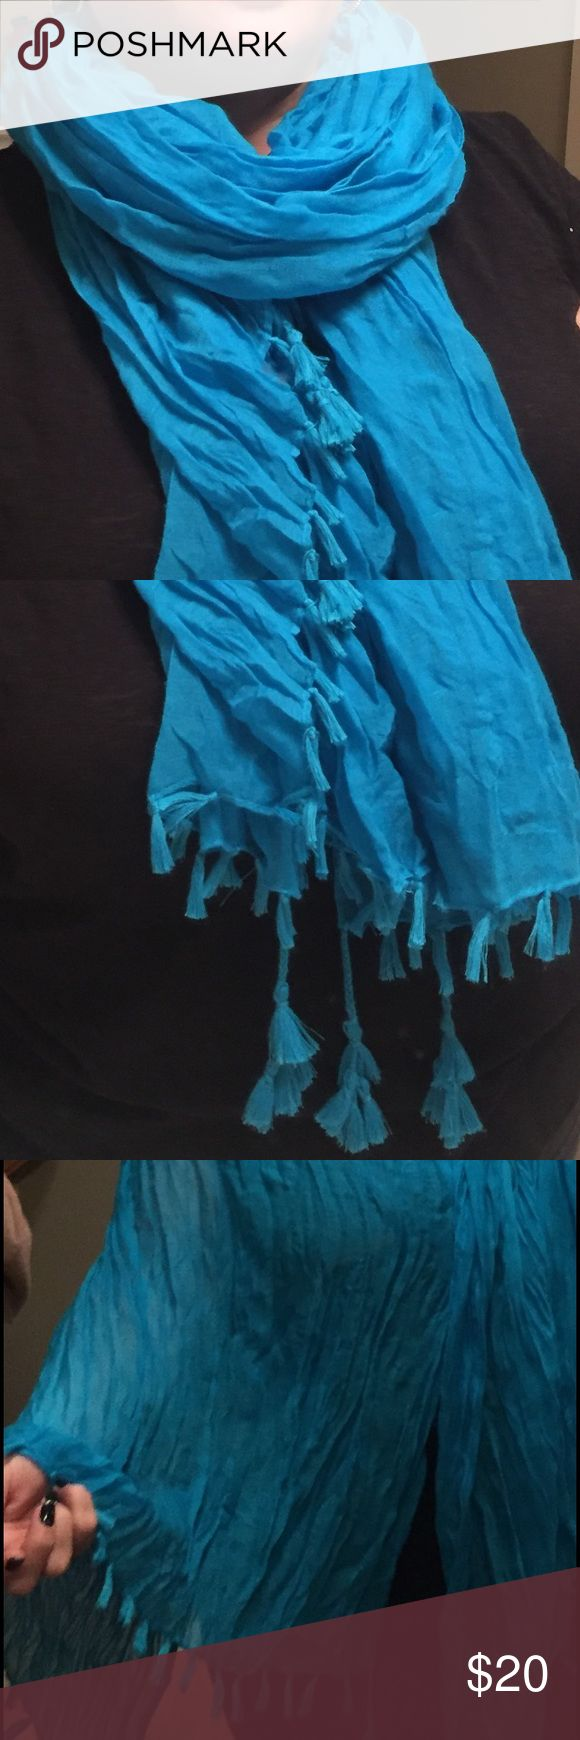 "70 x 35"" Light Weight Scarf with Tassles This bright blue scarf is made of a light weight, soft, wrinkled-look fabric. It has fringe along each edge and tassels in the corners.  It could be worn many ways. Smoke and pet free home. Accessories Scarves & Wraps"